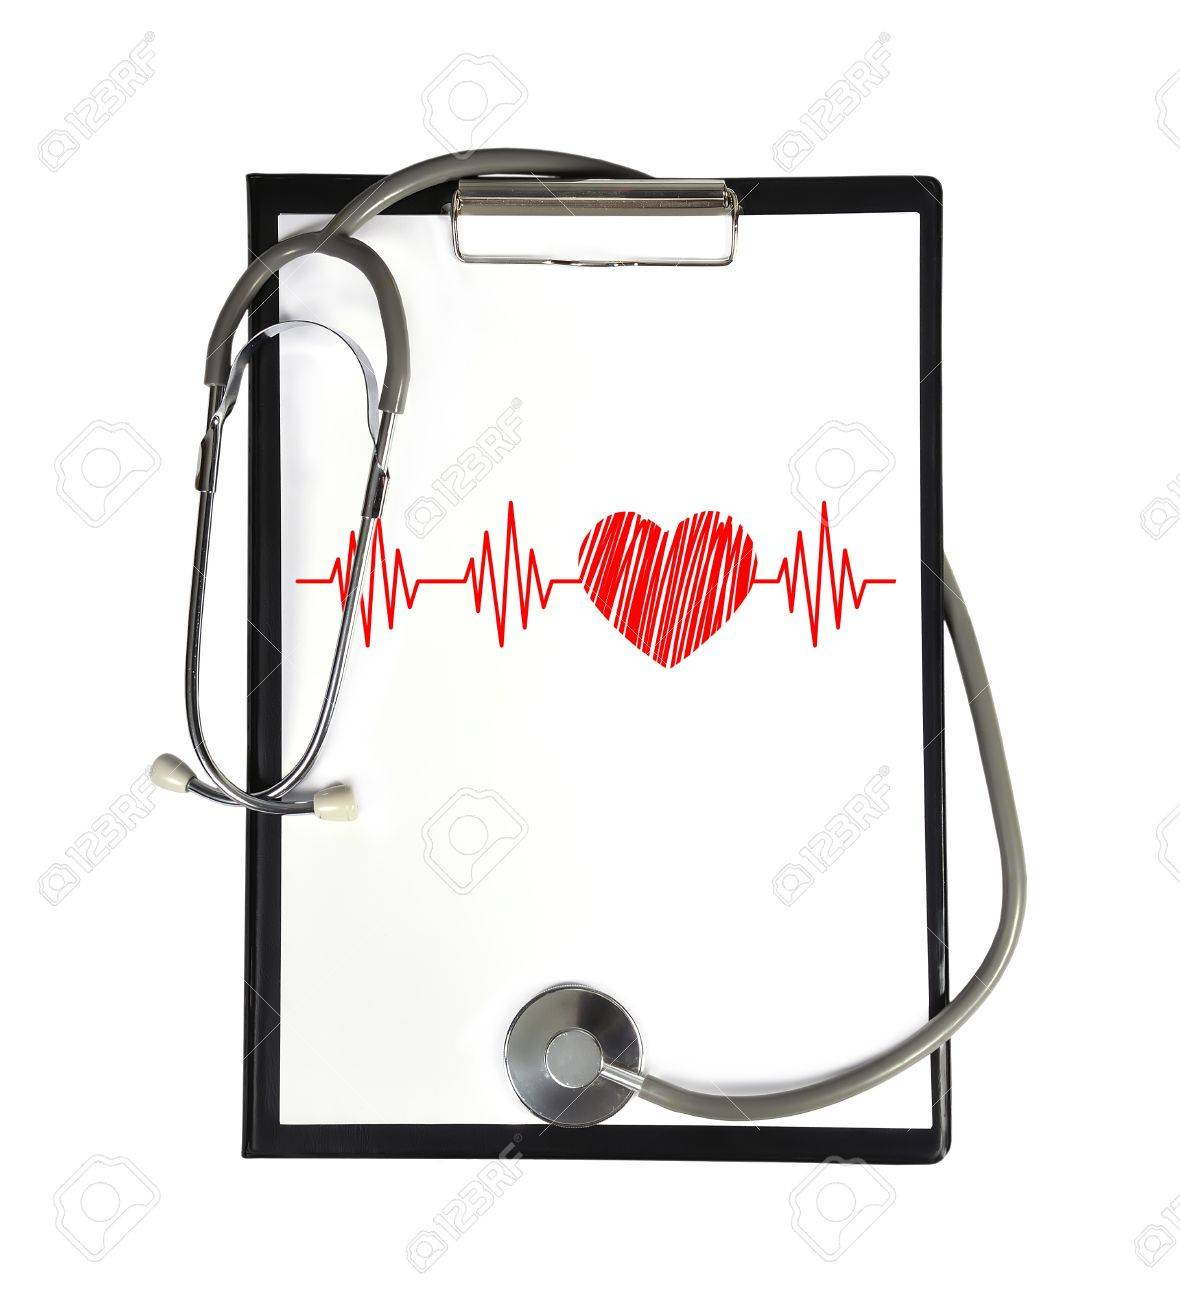 Heartbeat Drawing Clipboard And Stethoscope Stock Photo Picture And